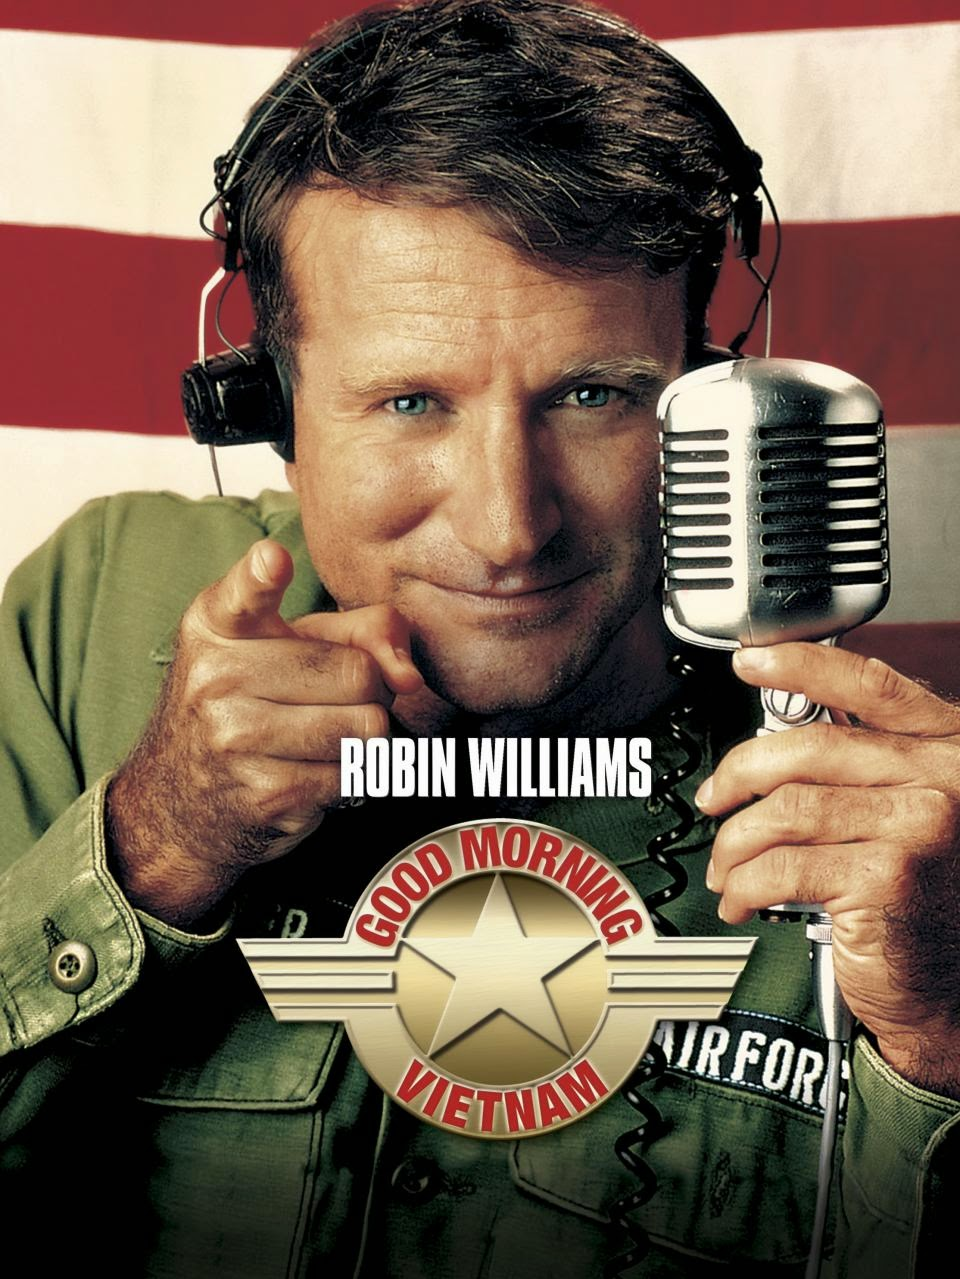 a review of barry levinsons directed movie good morning vietnam Although the film is set in vietnam in 1965 the fighting seems to take a backseat  to william's joking instead  director barry levinson producer mark johnson,  larry brezner screenplay mitch  extract of a review from 1987.